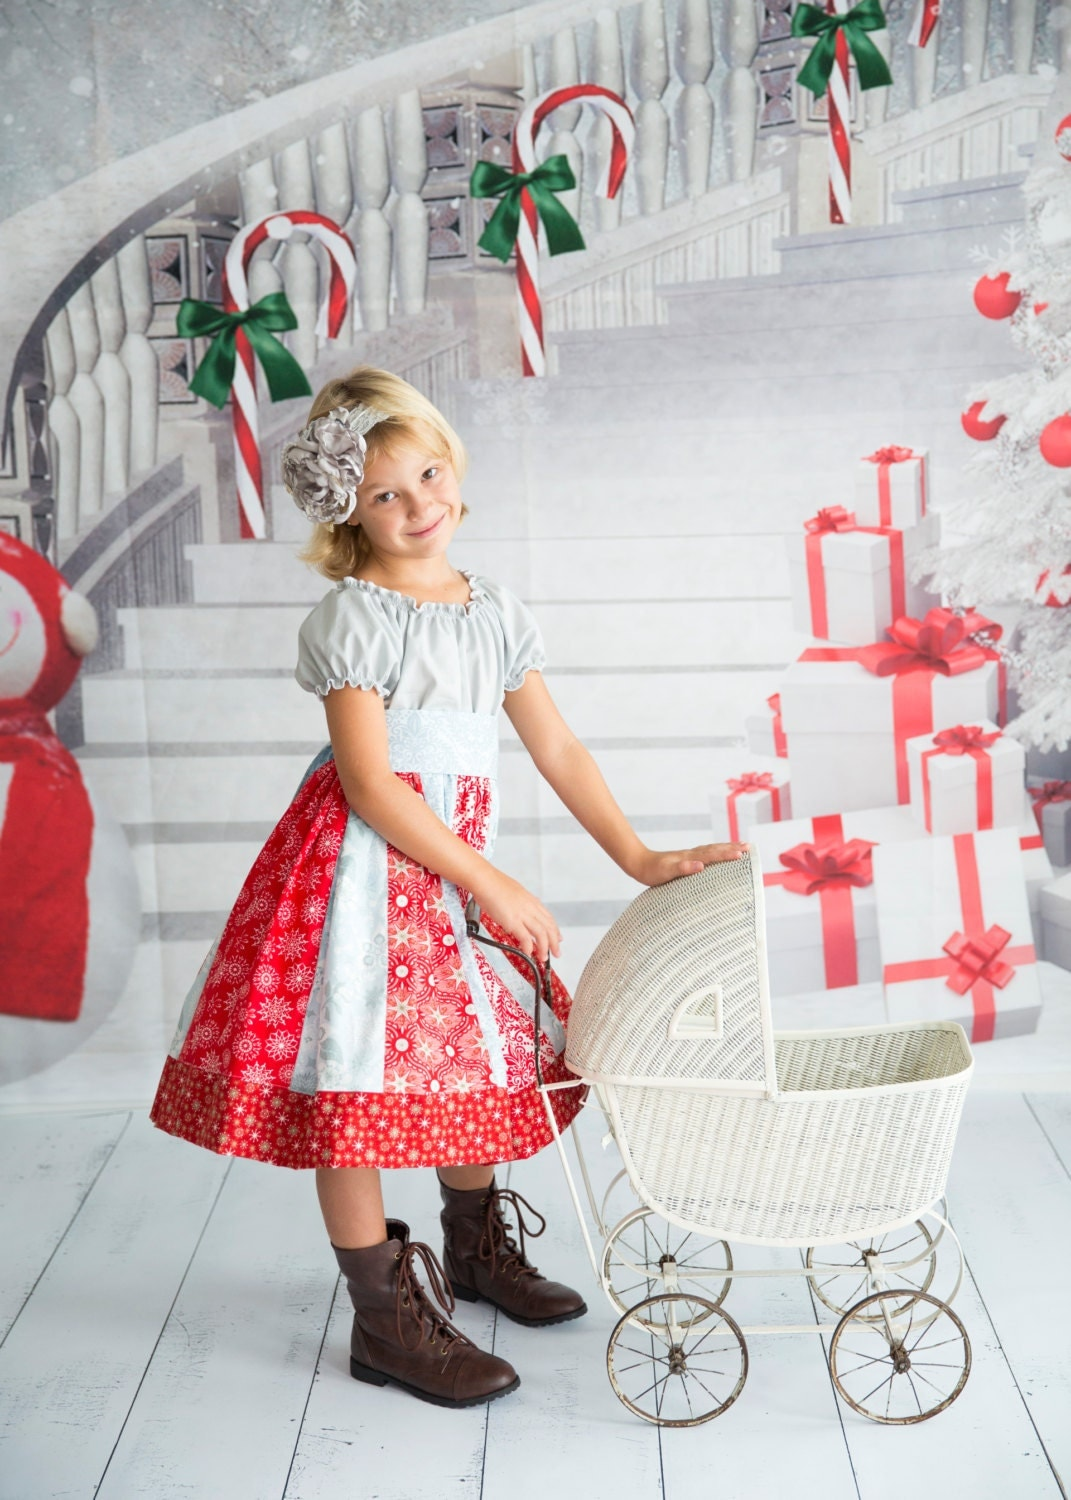 6 Month Christmas Dress hd gallery